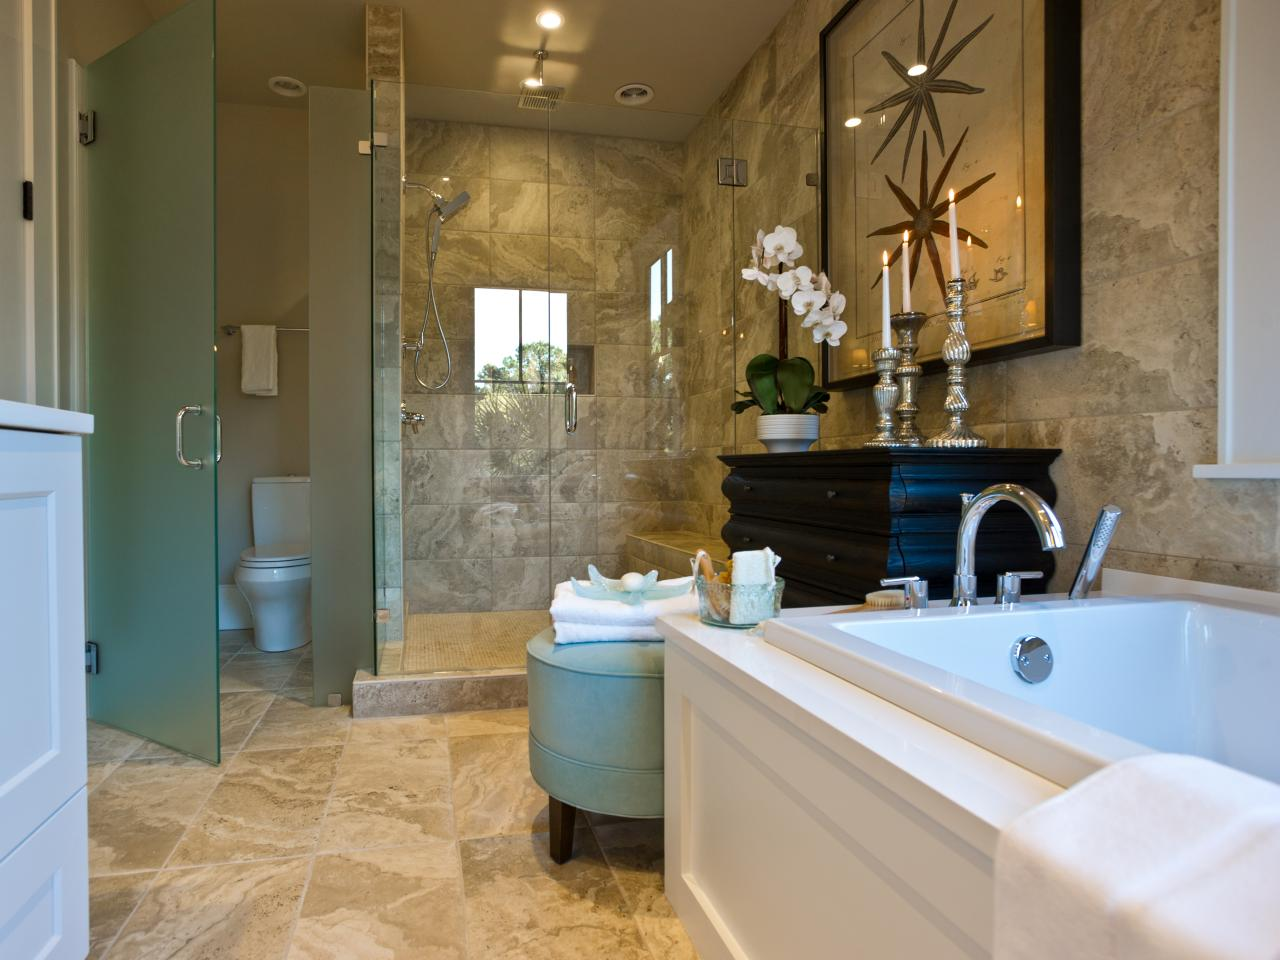 Hgtv dream home 2013 master bathroom pictures and video for Master bedroom and bath plans